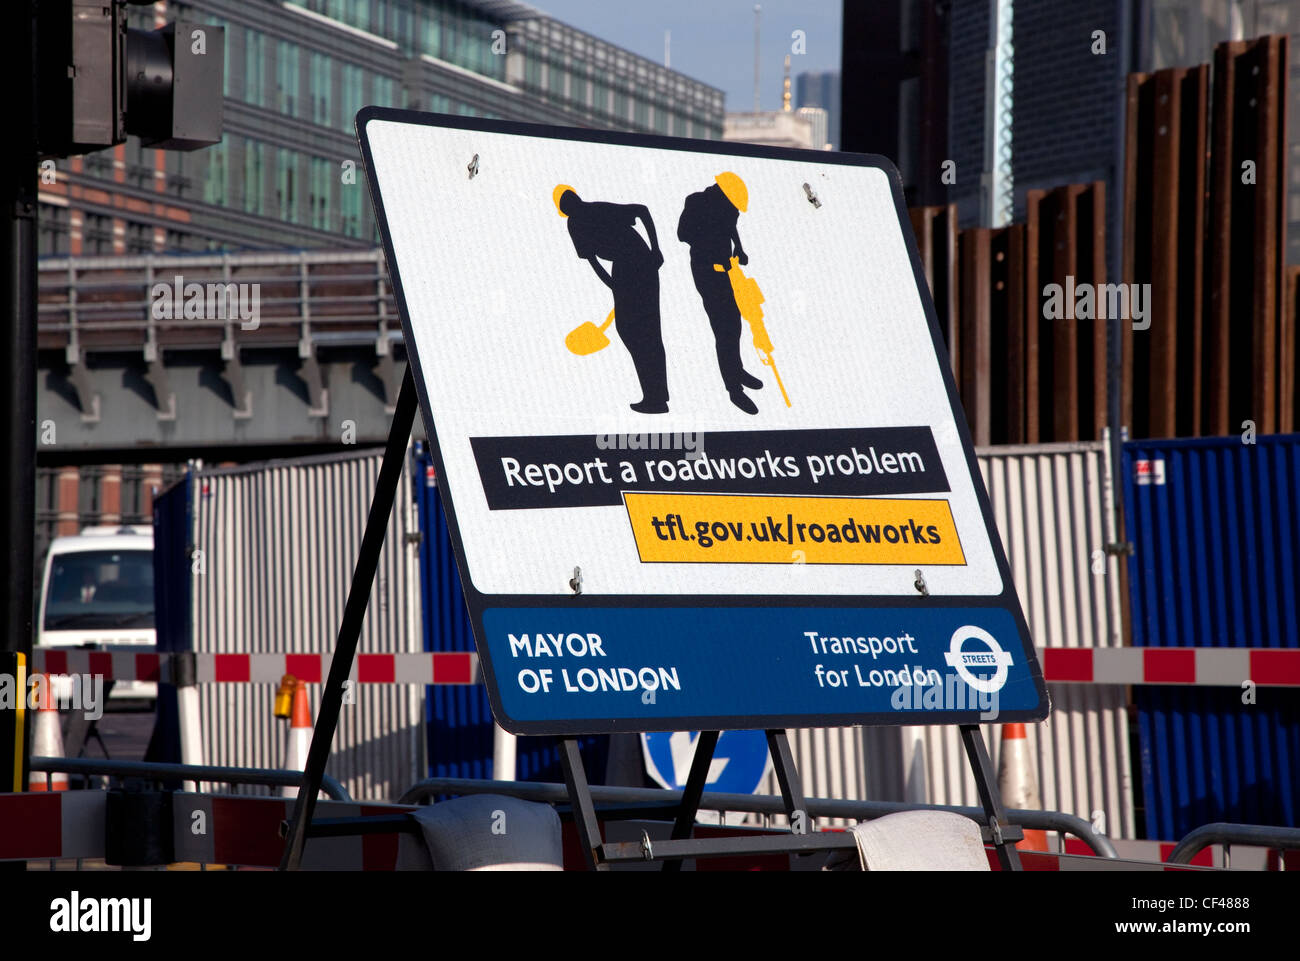 'Report a roadworks problem' sign in Central London - Stock Image